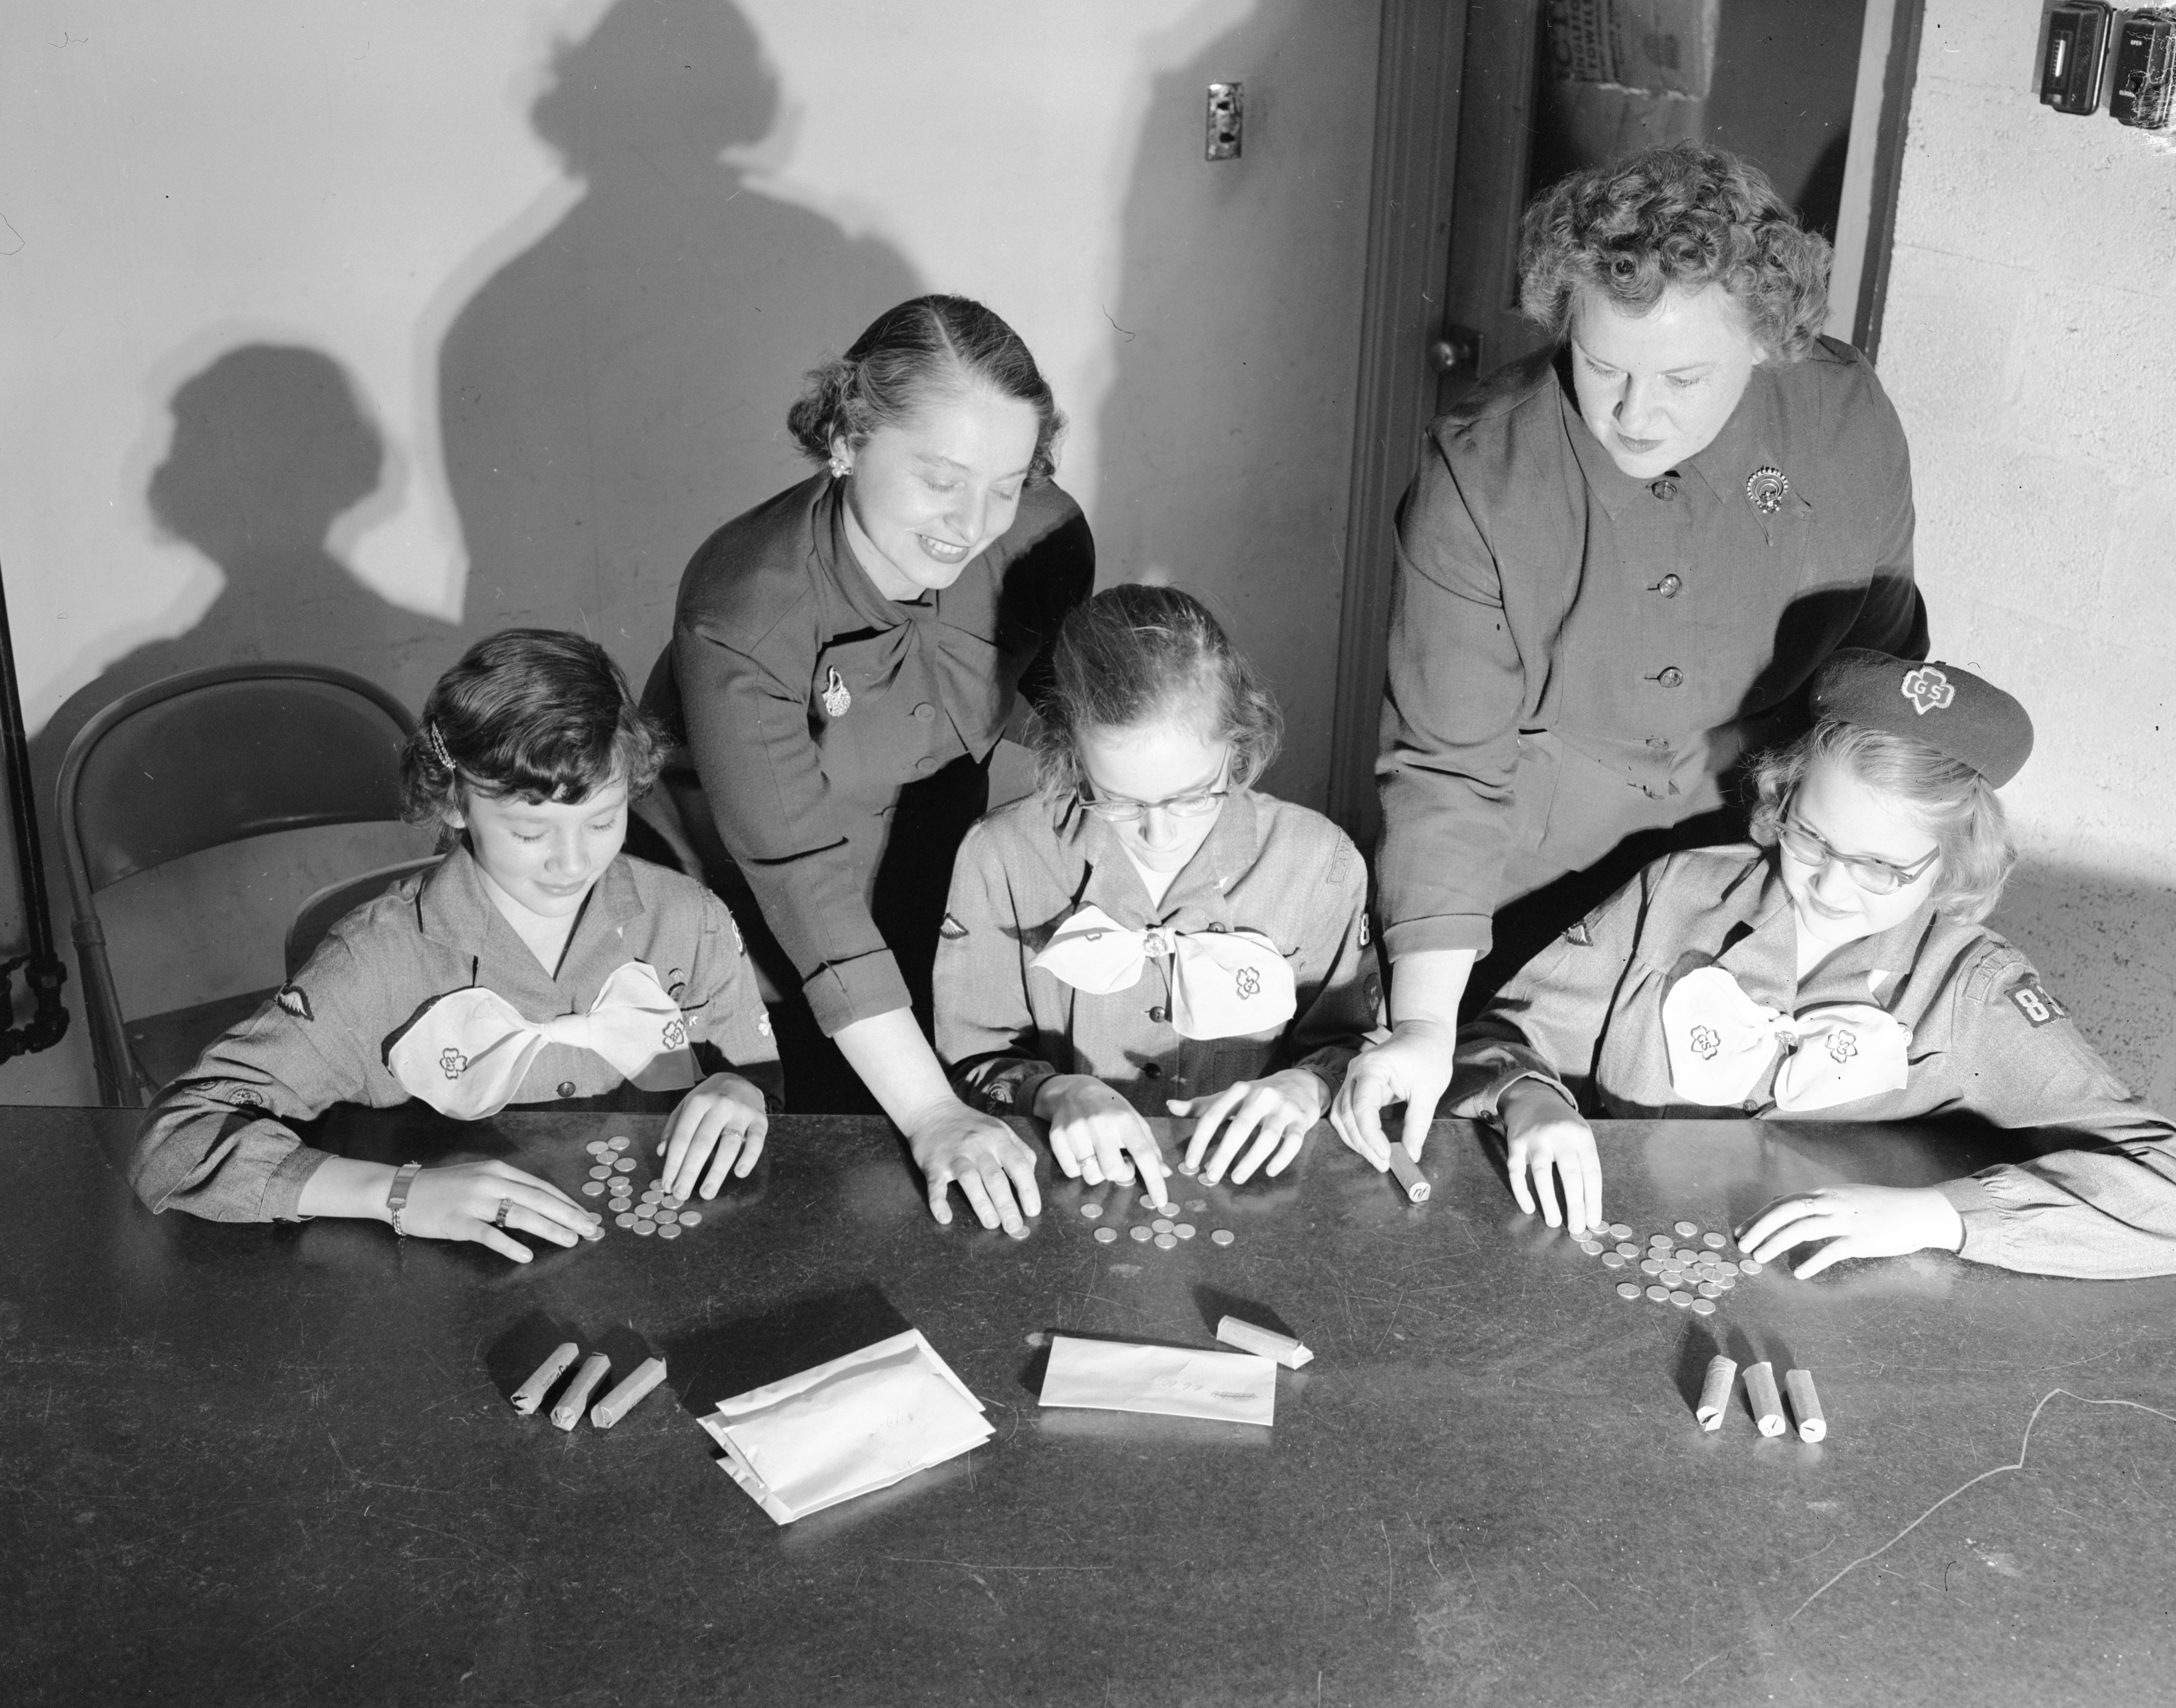 Girls Scouts Count Money For March of Dimes, January 1955 image